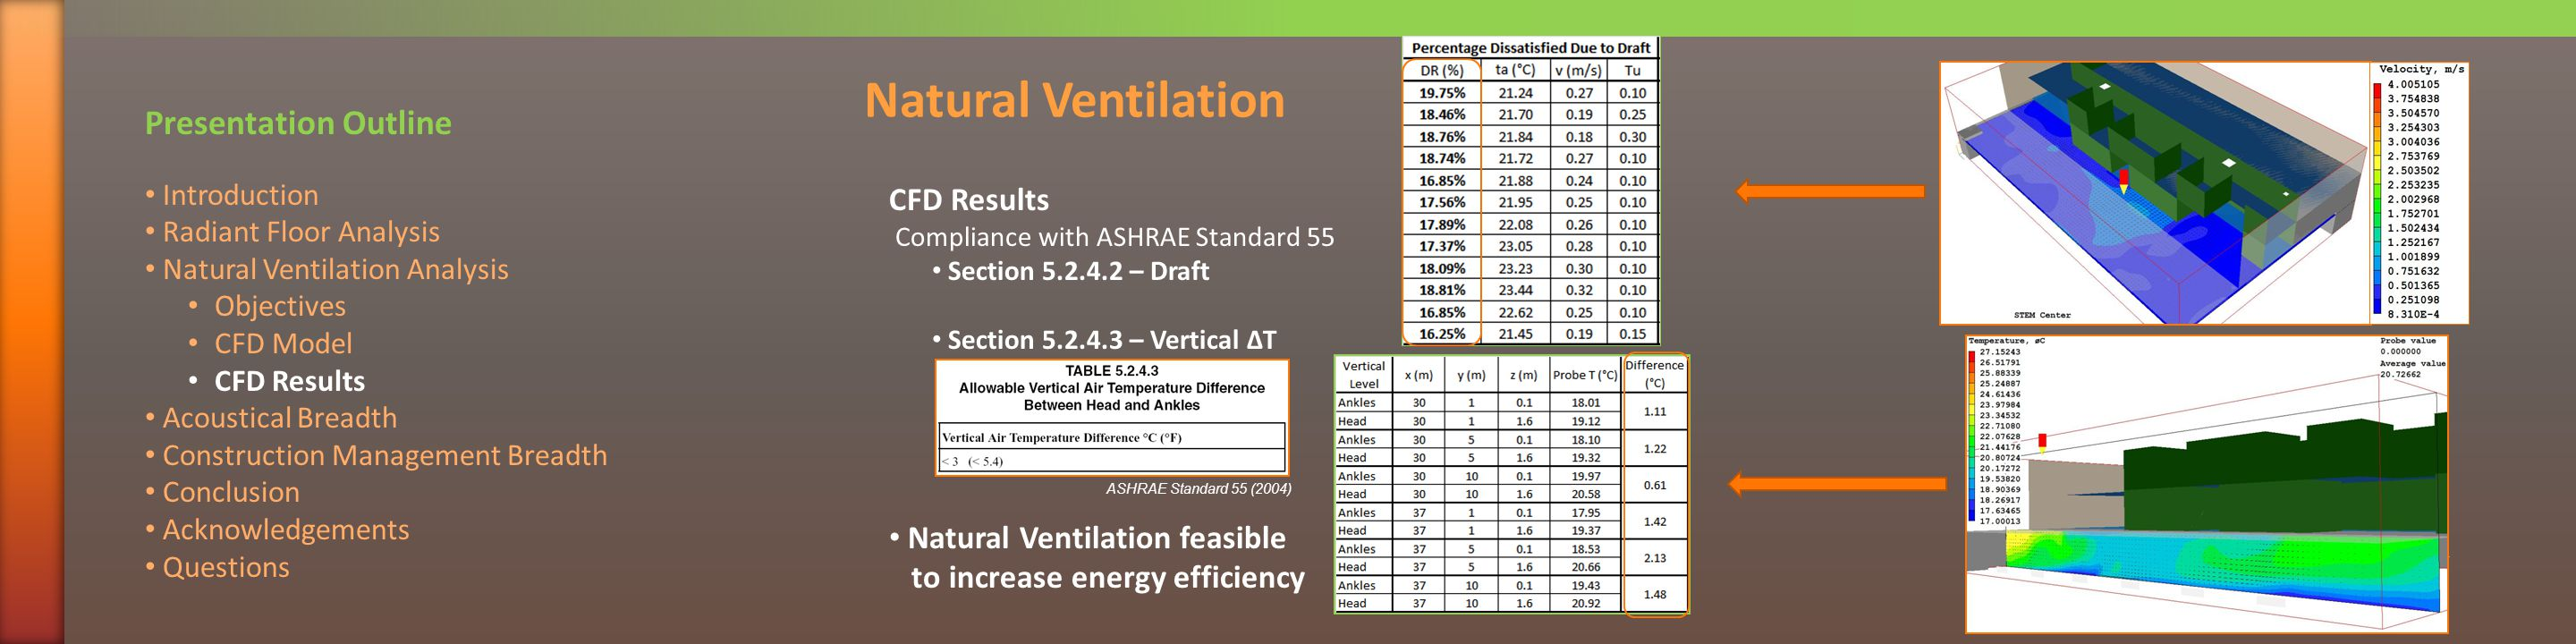 CFD Results Compliance with ASHRAE Standard 55 Section 5.2.4.2 – Draft Section 5.2.4.3 – Vertical ΔT Natural Ventilation feasible to increase energy efficiency Natural Ventilation Presentation Outline Introduction Radiant Floor Analysis Natural Ventilation Analysis Objectives CFD Model CFD Results Acoustical Breadth Construction Management Breadth Conclusion Acknowledgements Questions ASHRAE Standard 55 (2004)